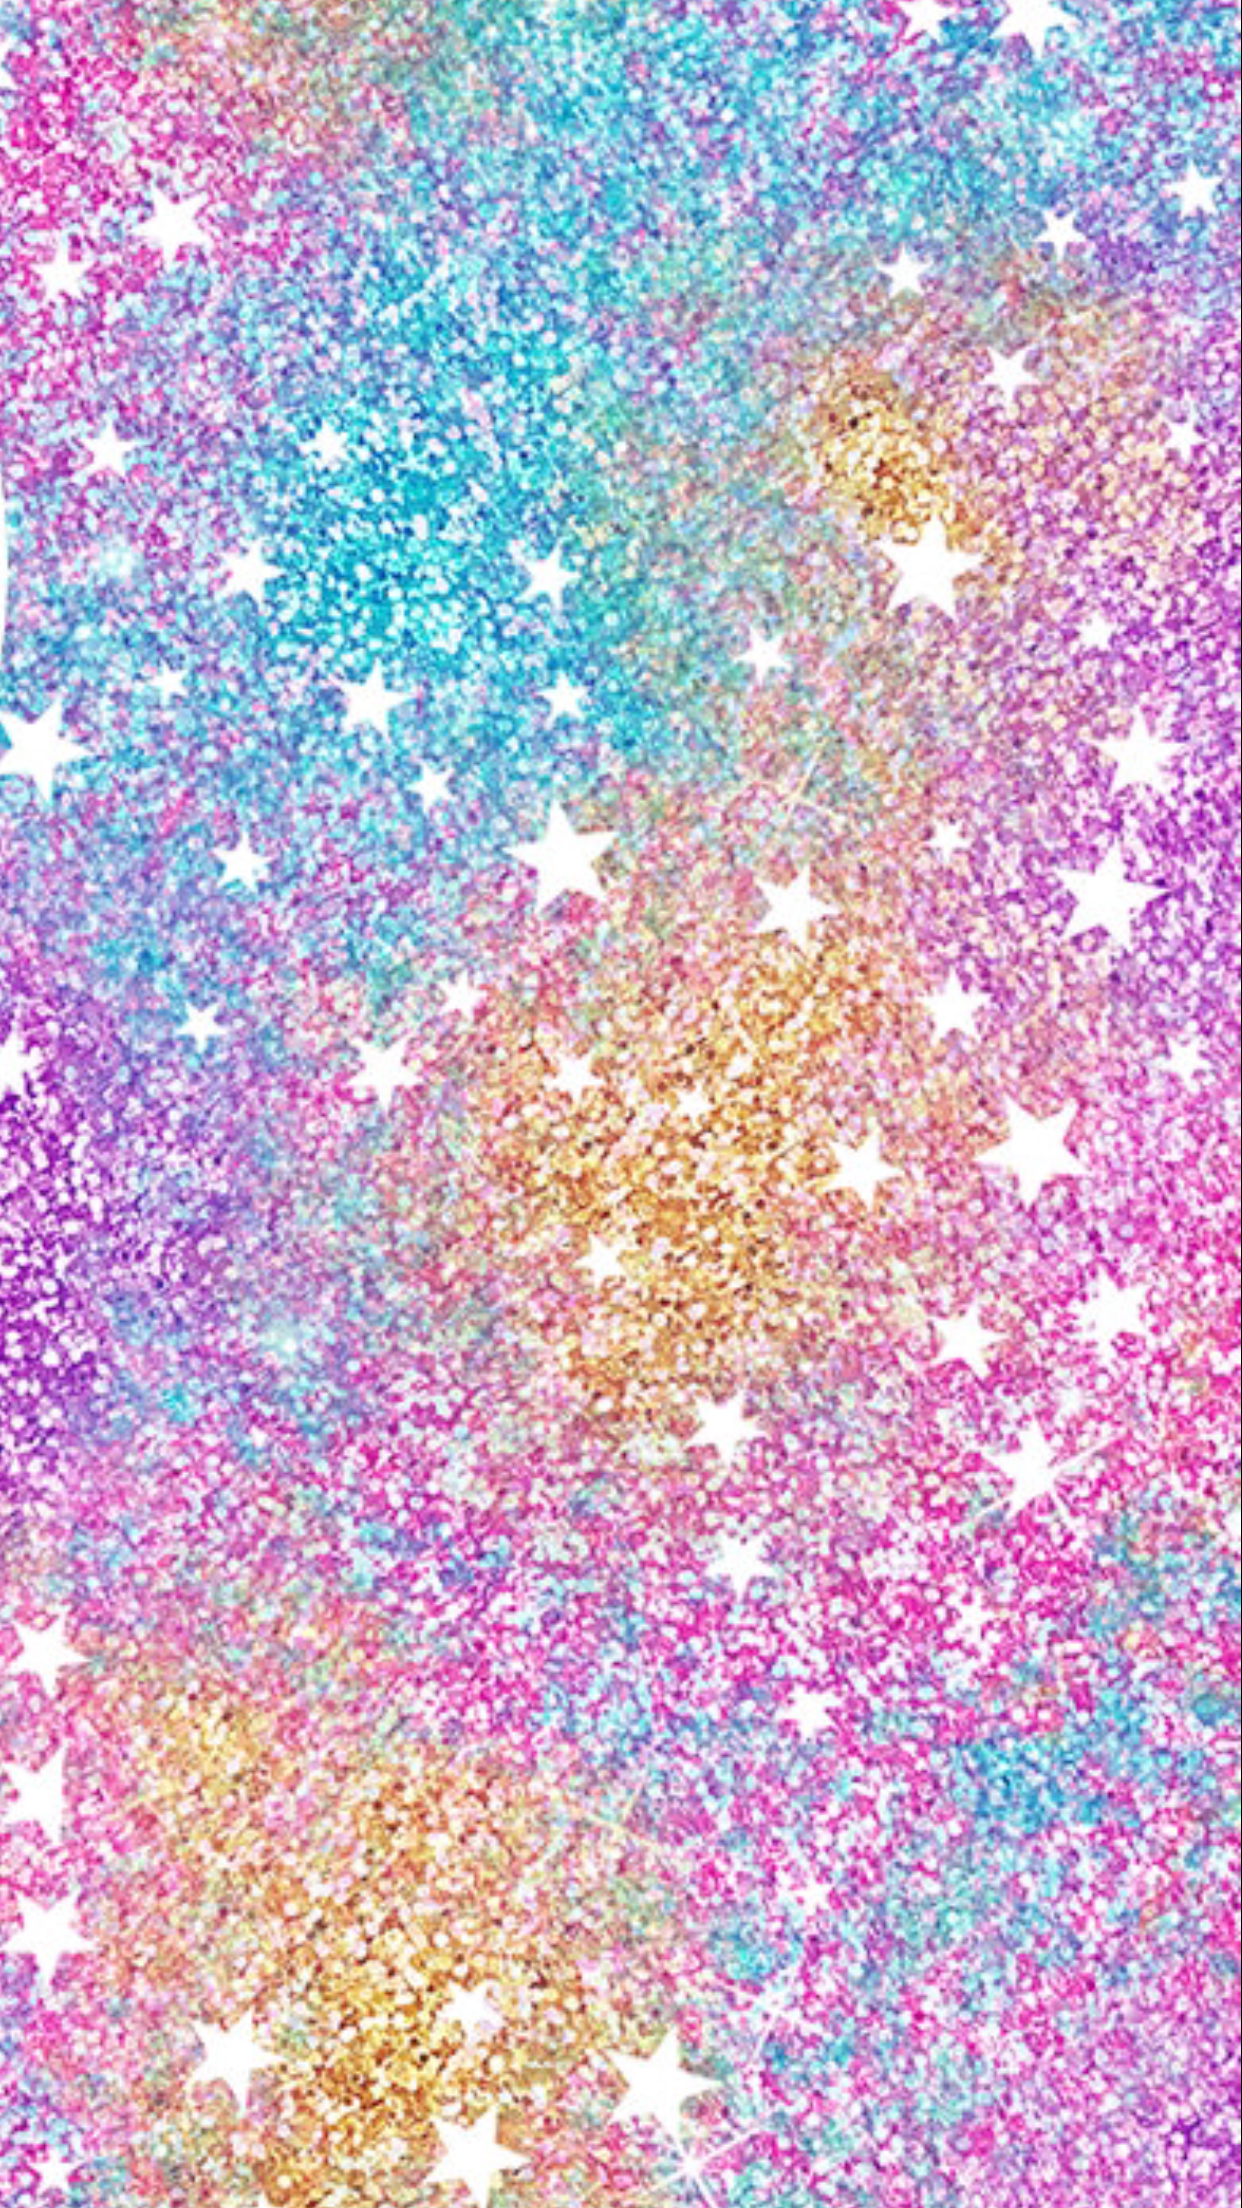 Pin By Nena Da Marto On Wallpapers Iphone Wallpaper Glitter Glittery Wallpaper Glitter Phone Wallpaper